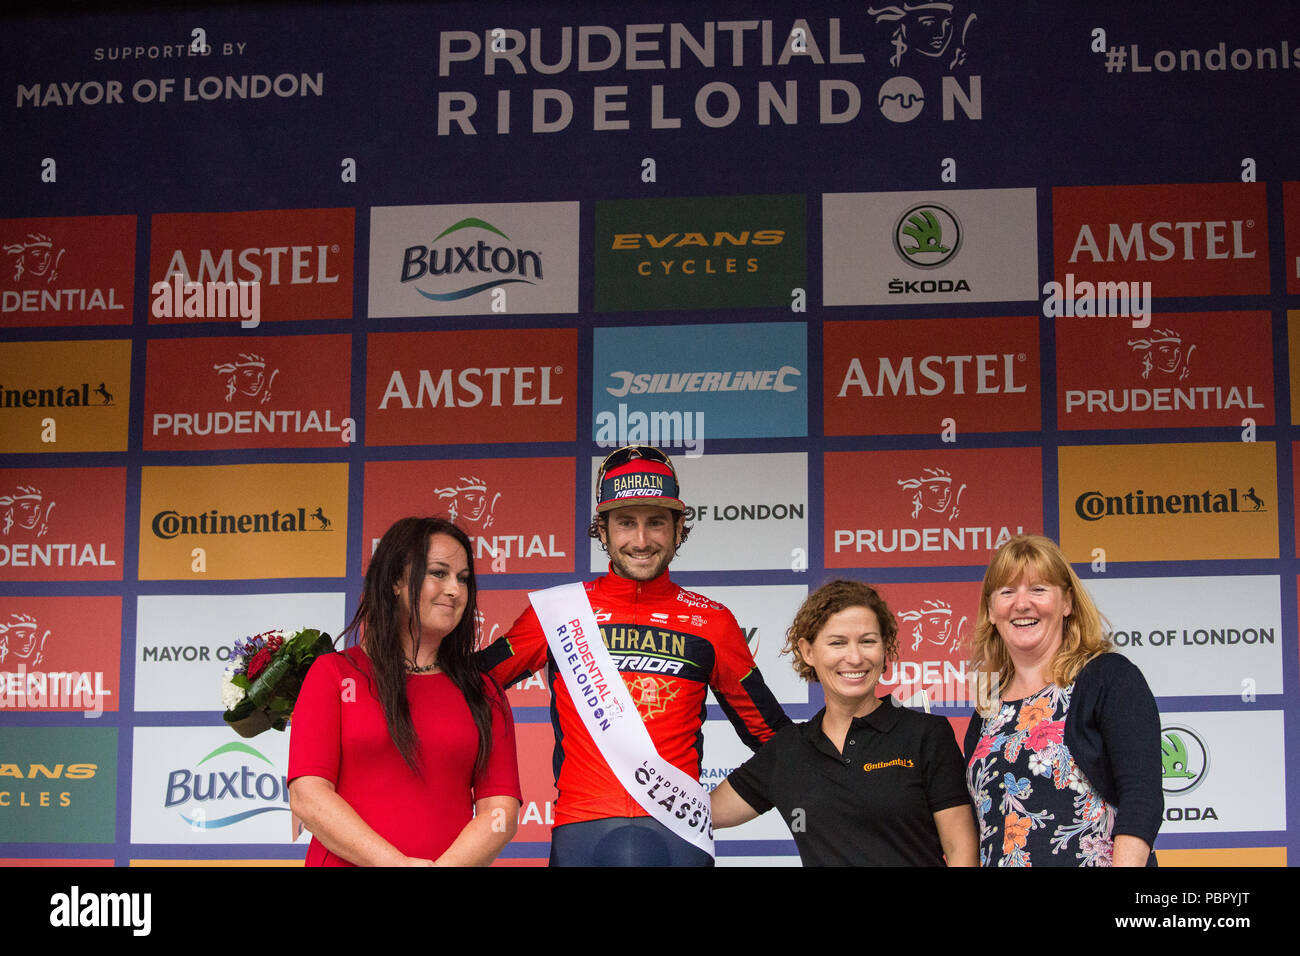 London, UK. 29th July, 2018. Manuele Boaro of the Bahrain-Merida team celebrates winning the King of the Sprint title at the Prudential RideLondon-Surrey Classic, Britain's only men's UCI World Tour race and the world's richest one-day race with prizes worth 100,000 Euros to be won. - Stock Image